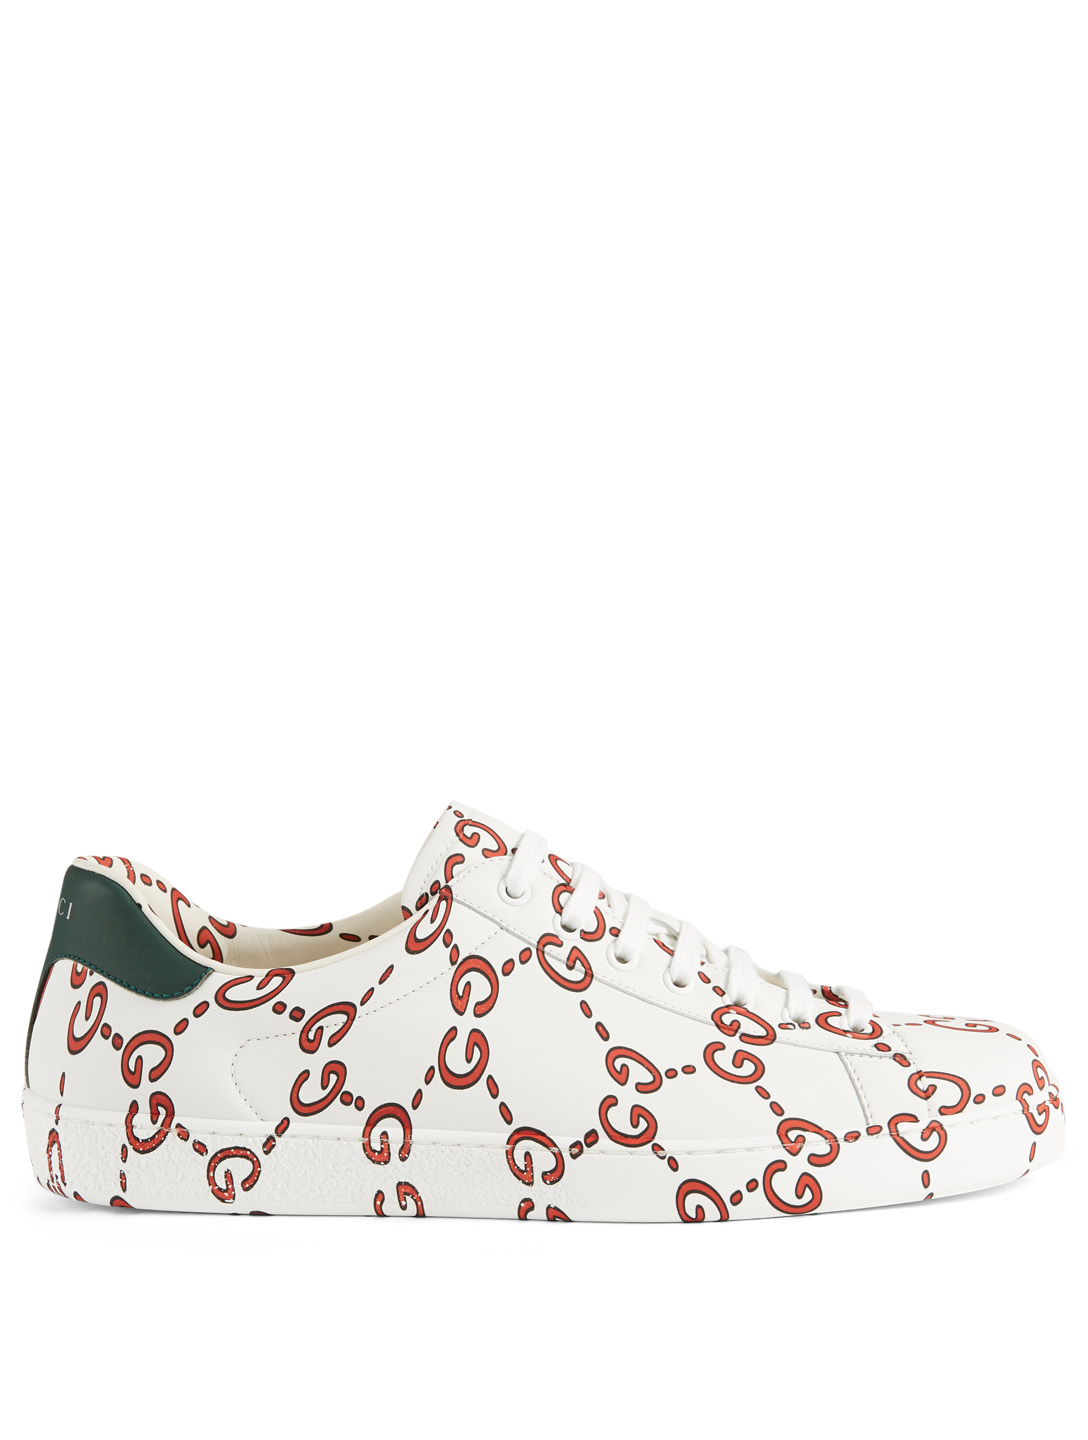 bd28d44d975 GUCCI Ace Leather Sneakers In GG Print